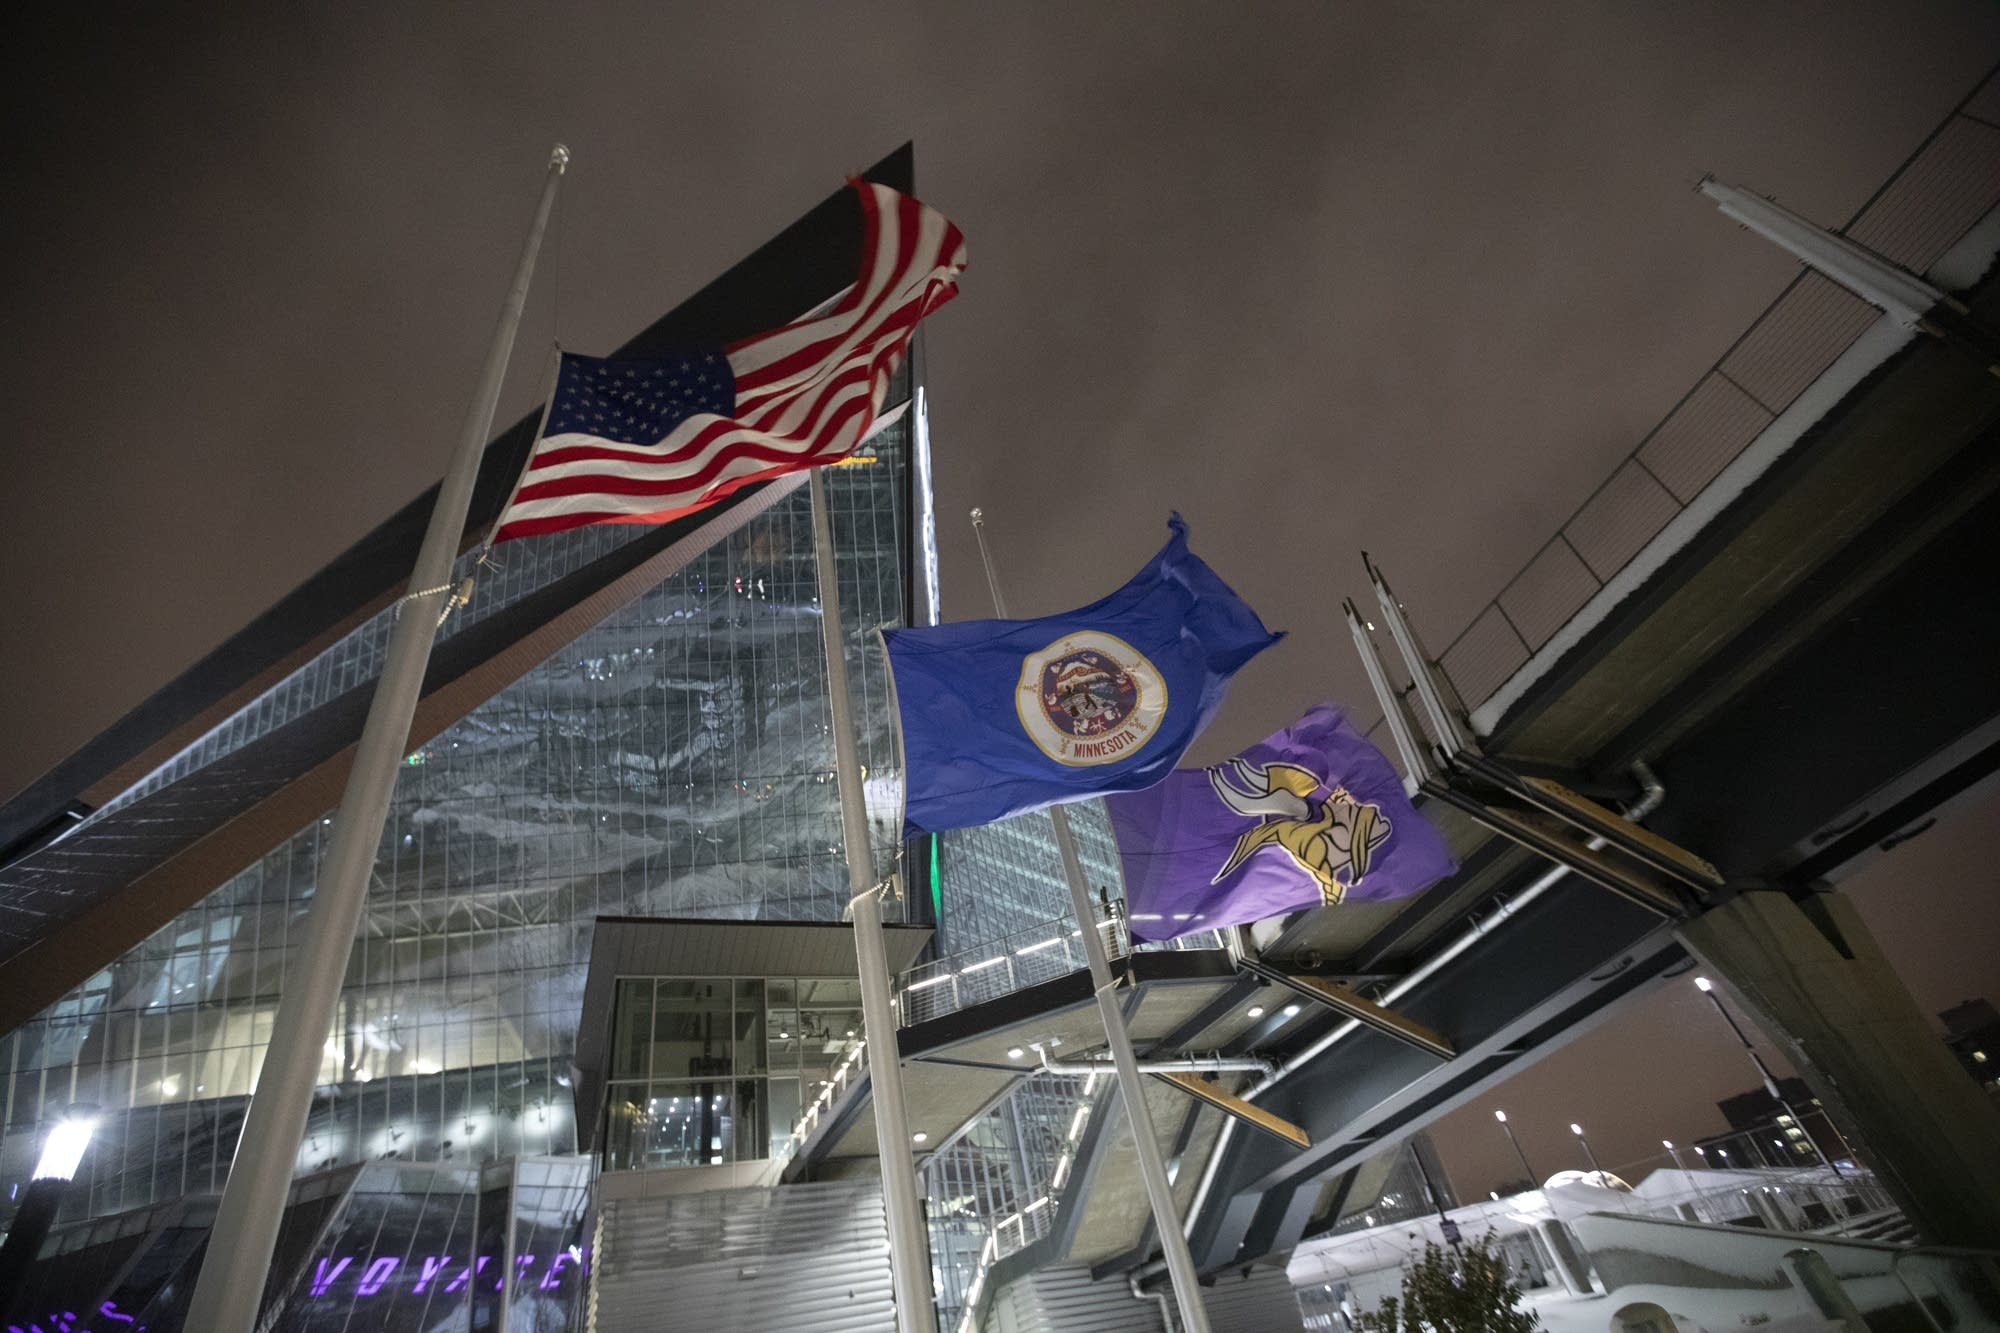 Flags blow in 20 mph winds and snow falls onto Minneapolis.